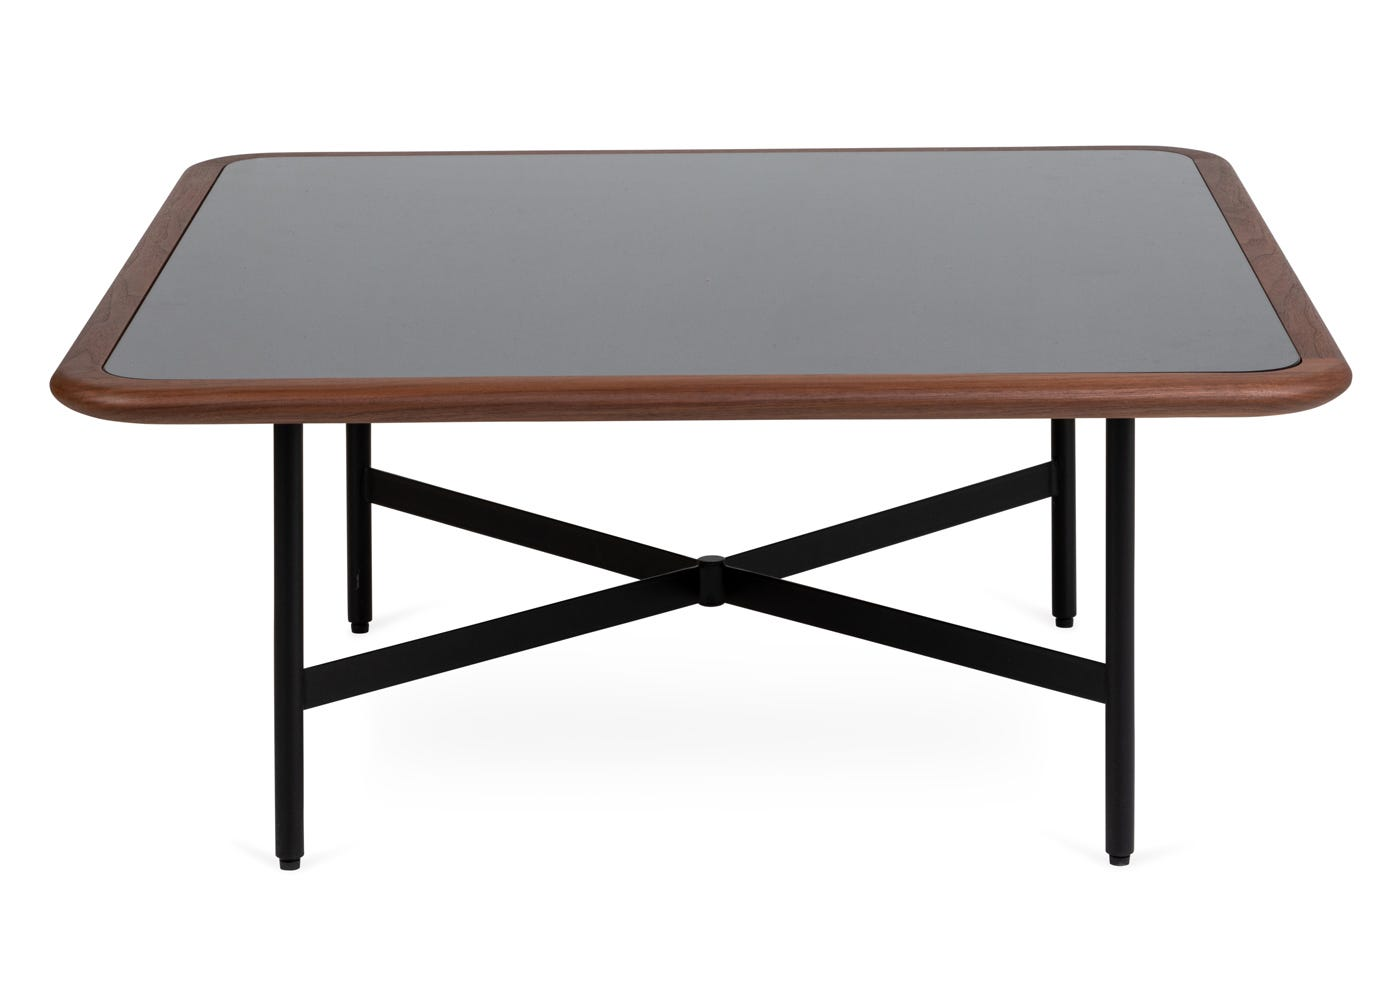 Heal's Emerson Square Coffee Table